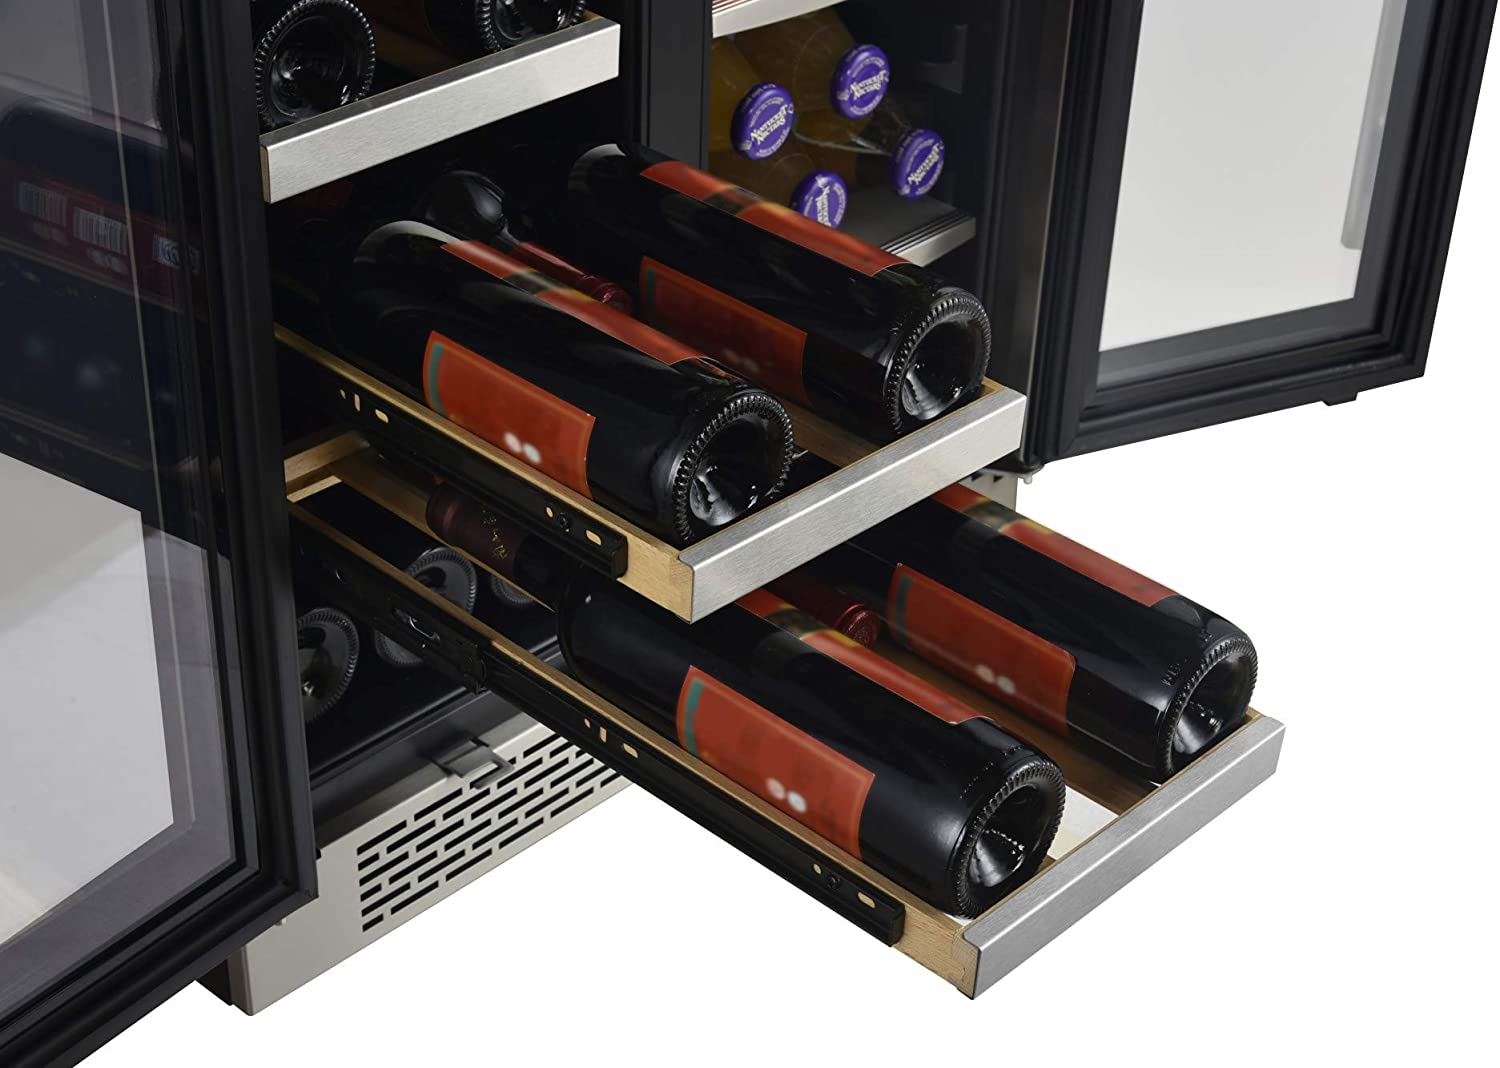 Amazon Com Avallon Awbc241ggfd 24 Inch Wide 21 Bottle And 60 Can Capacity Built In Wine And Beverage Cooler With French Doors Appliances